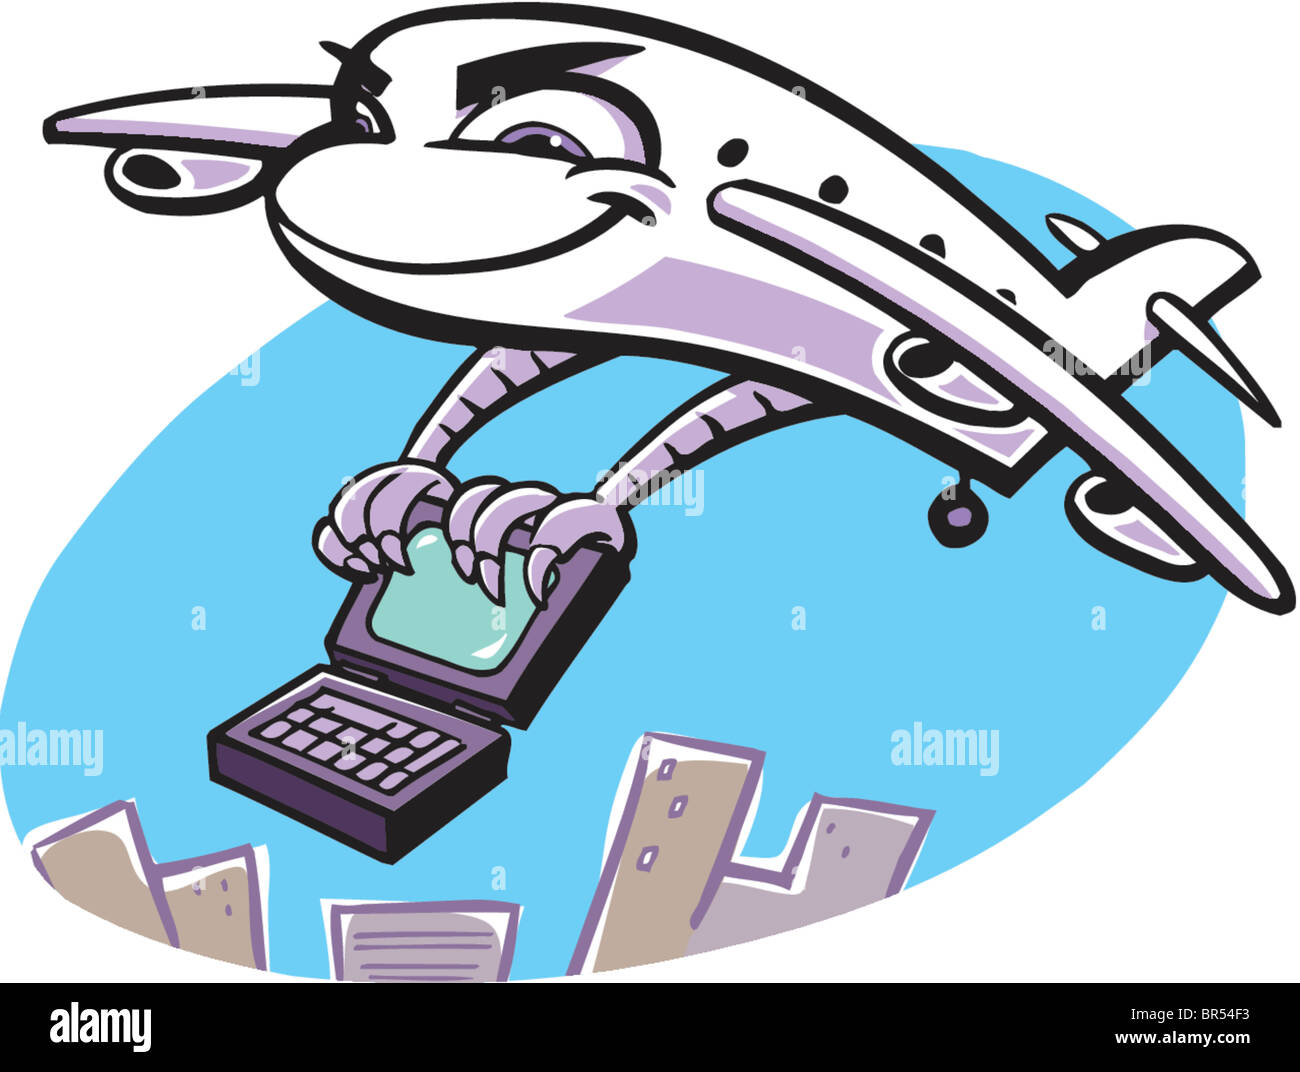 A business travel depicted as a plane flying with a laptop in its claws - Stock Image